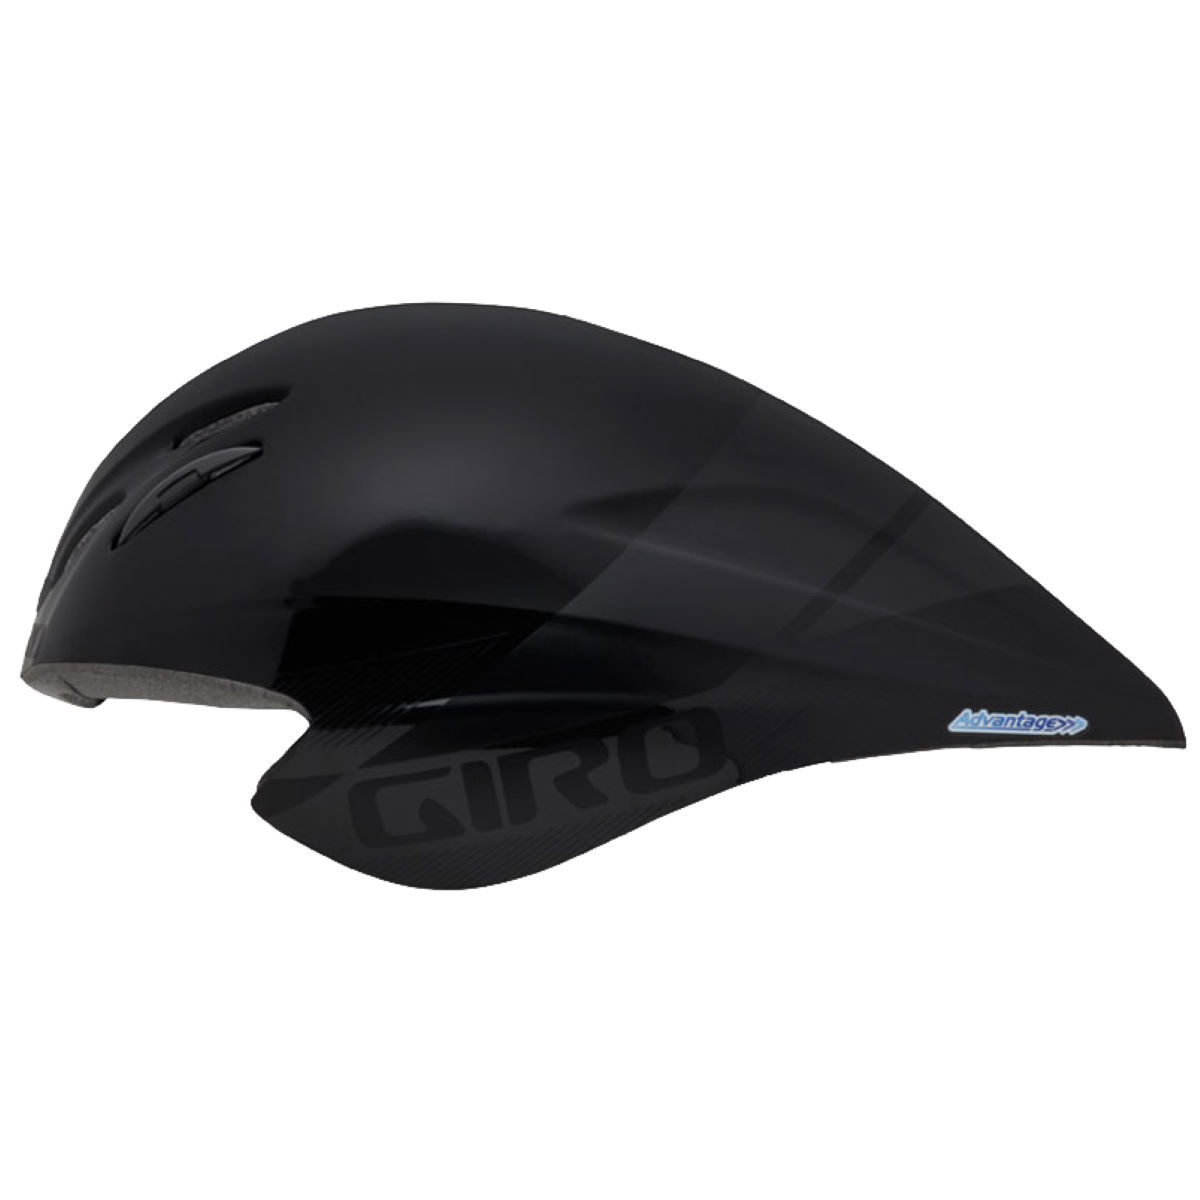 Casque de contre-la-montre Giro Advantage 2 - Medium 55-59cm Noir/Noir Casques de route